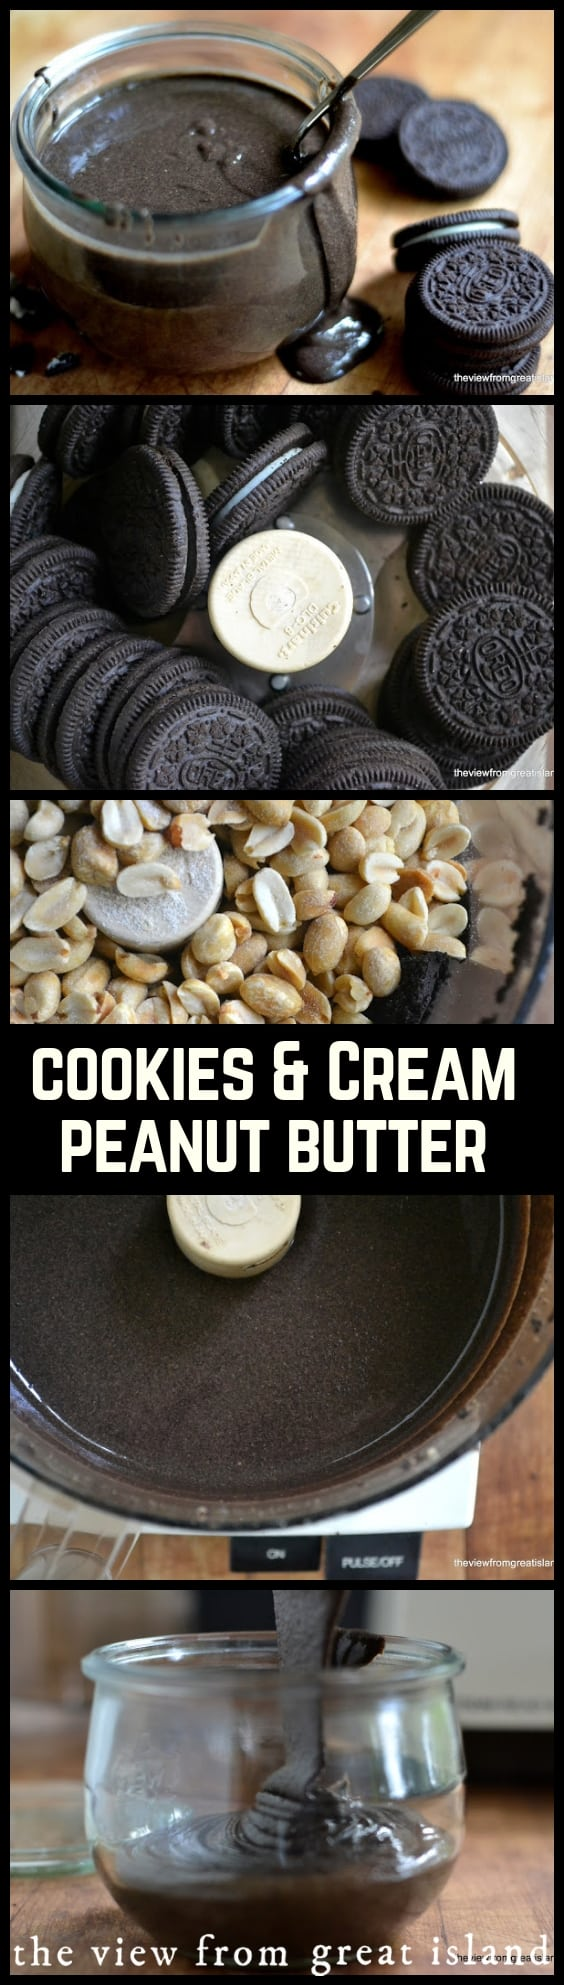 Cookies and Cream Peanut Butter ~ a super quick and easy treat that puts plain old peanut butter to shame ~ slather it on toast, use it as a dip for fruit, or just go at it with a spoon! #recipe #easy #kids #snack #dessert #oreos #cookiesandcream #dip #peanutbutter #cookies